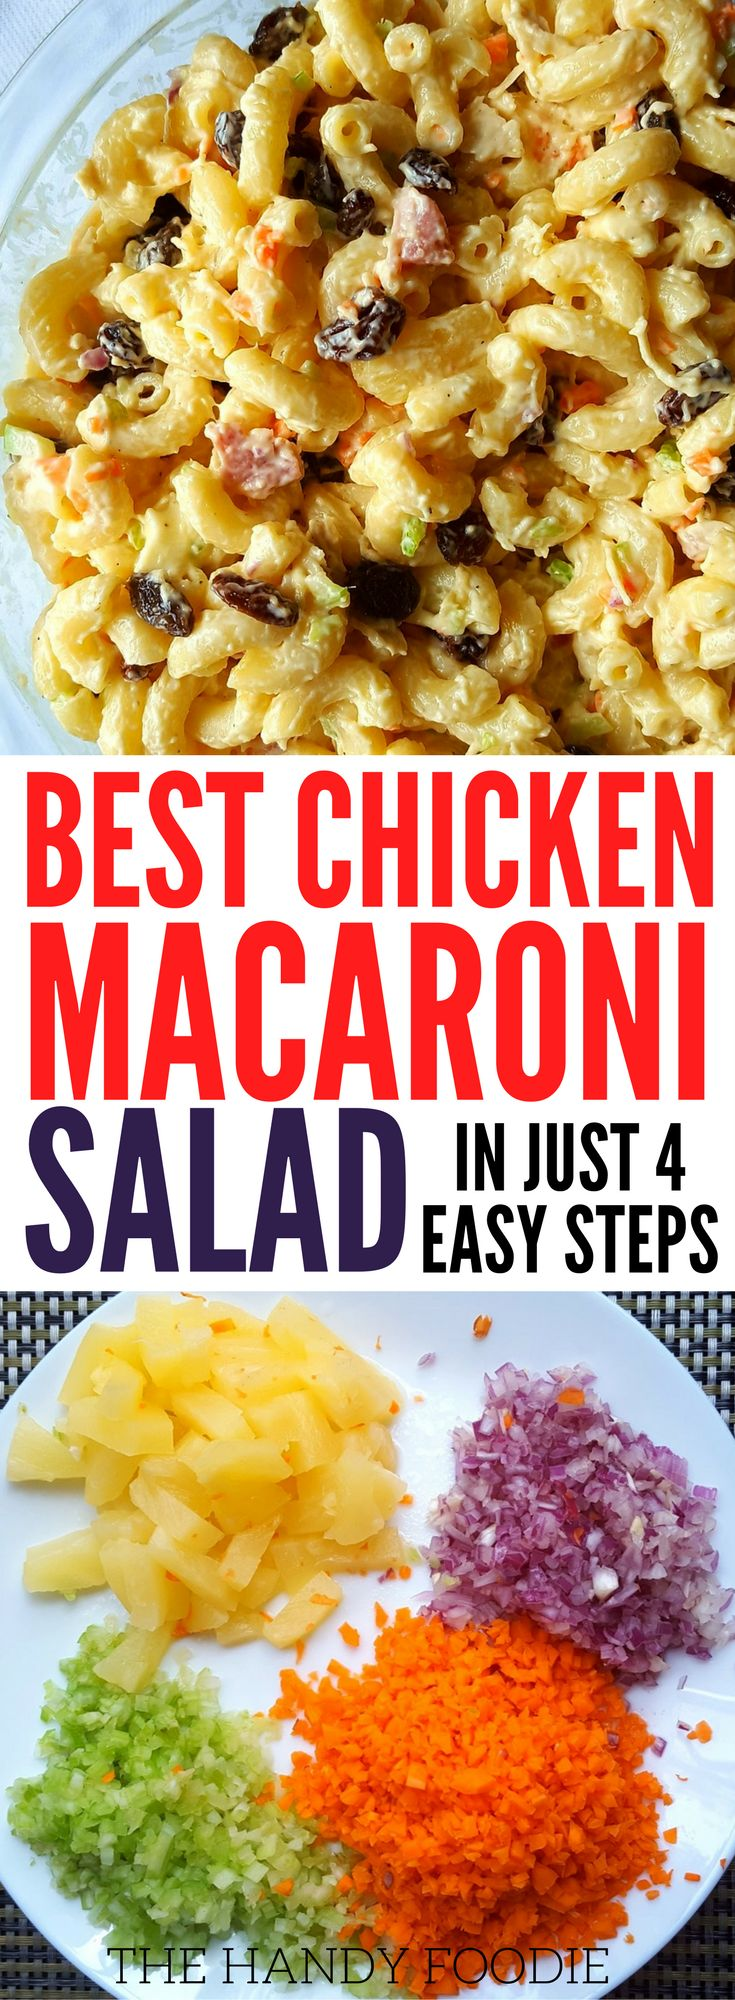 Easy best chicken macaroni salad as yummy appetizer or dinner. It's so simple you can make it in 30 minutes or less. healthy food l classic macaroni salad l salad recipes l 30 minute meals l Perfect for warm summer nights, backyard barbecues and potlucks. | healthy recipes | | clean eating | | vegetarian salad | | chopped salad recipes . Click here to view full post. #salad #healthyeating #healthyfood #yummy #tasty